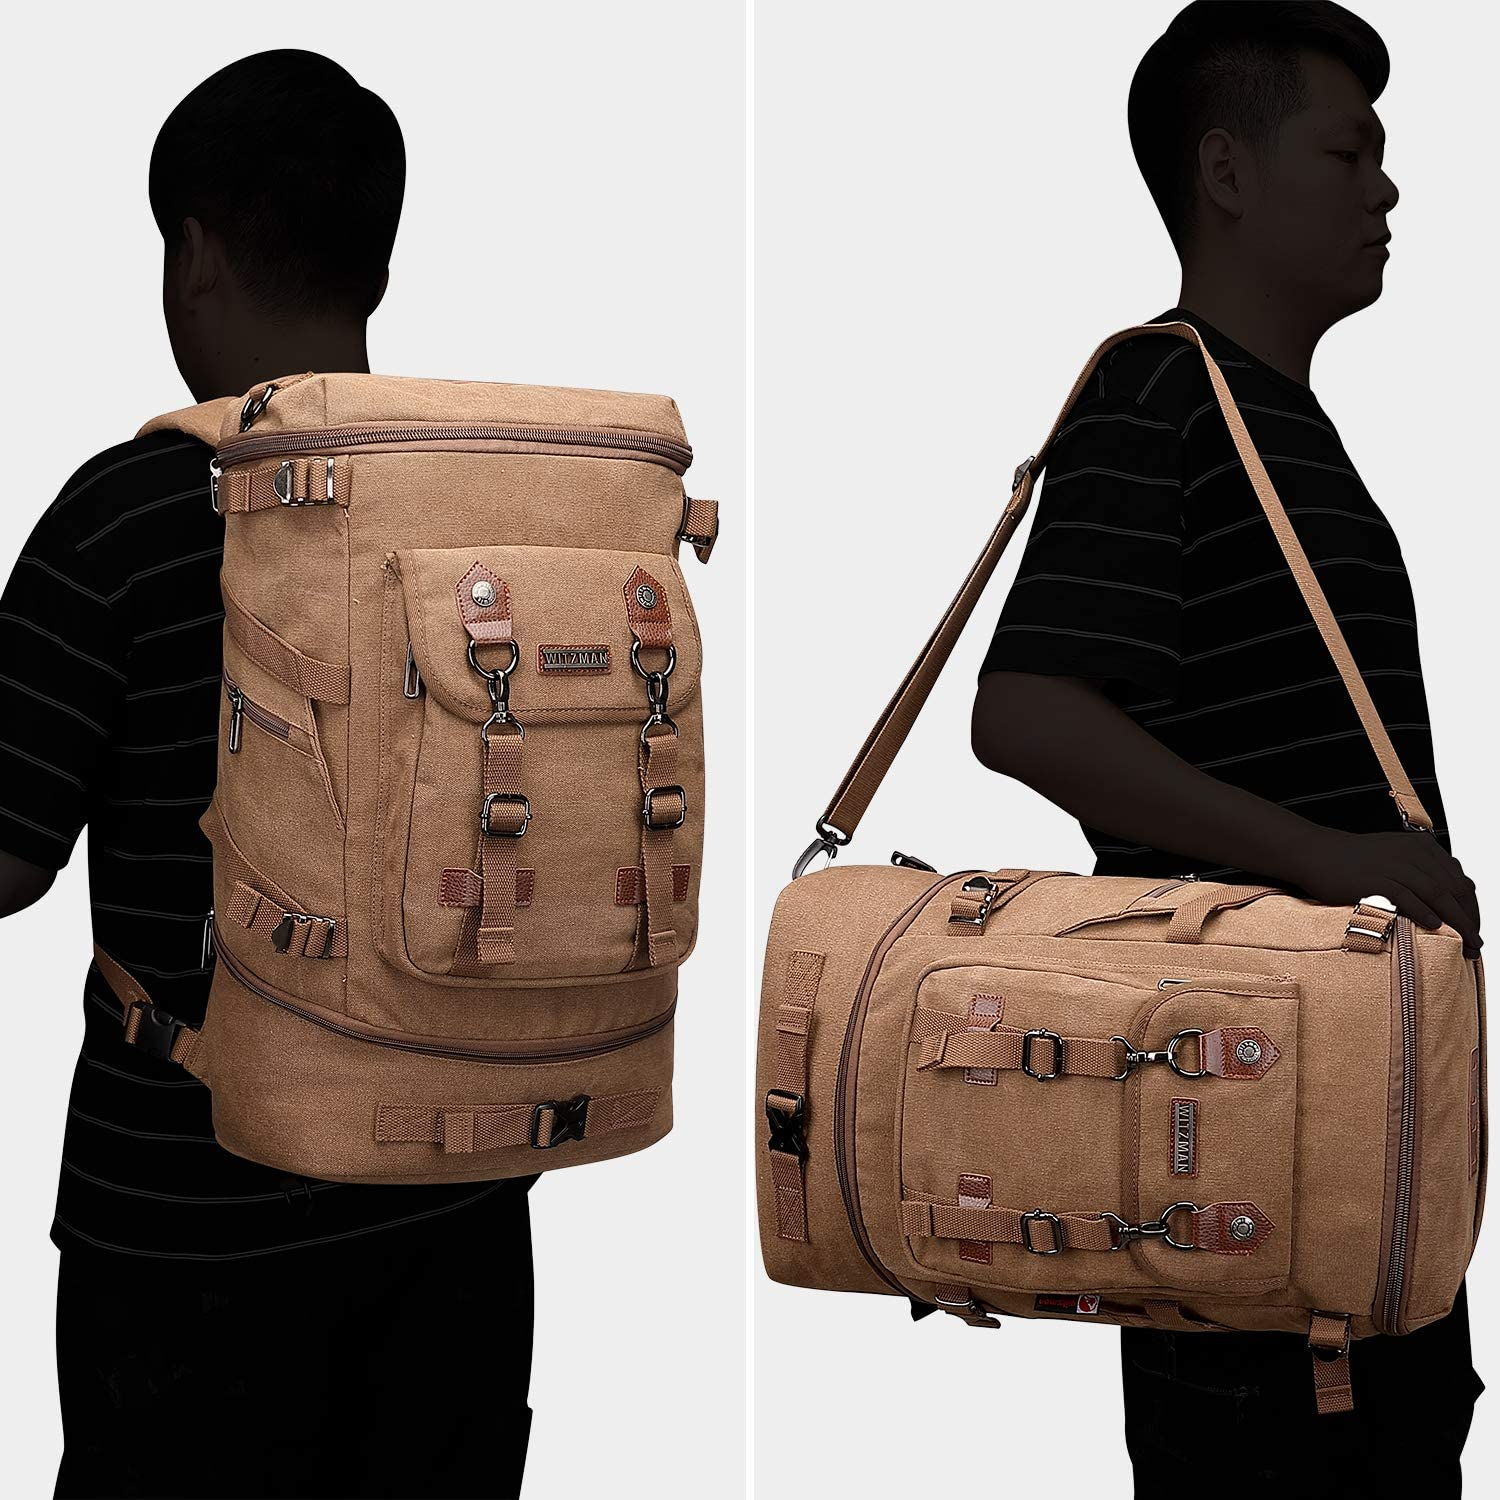 Men and Women Big Capacity Computer Canvas Travel Boarding Backpack Suitable for outings//Hiking//Schools Keiwqgf WHYNMG-SUJBBO Backpack Color : Gray, Size : 42cm29cm10cm